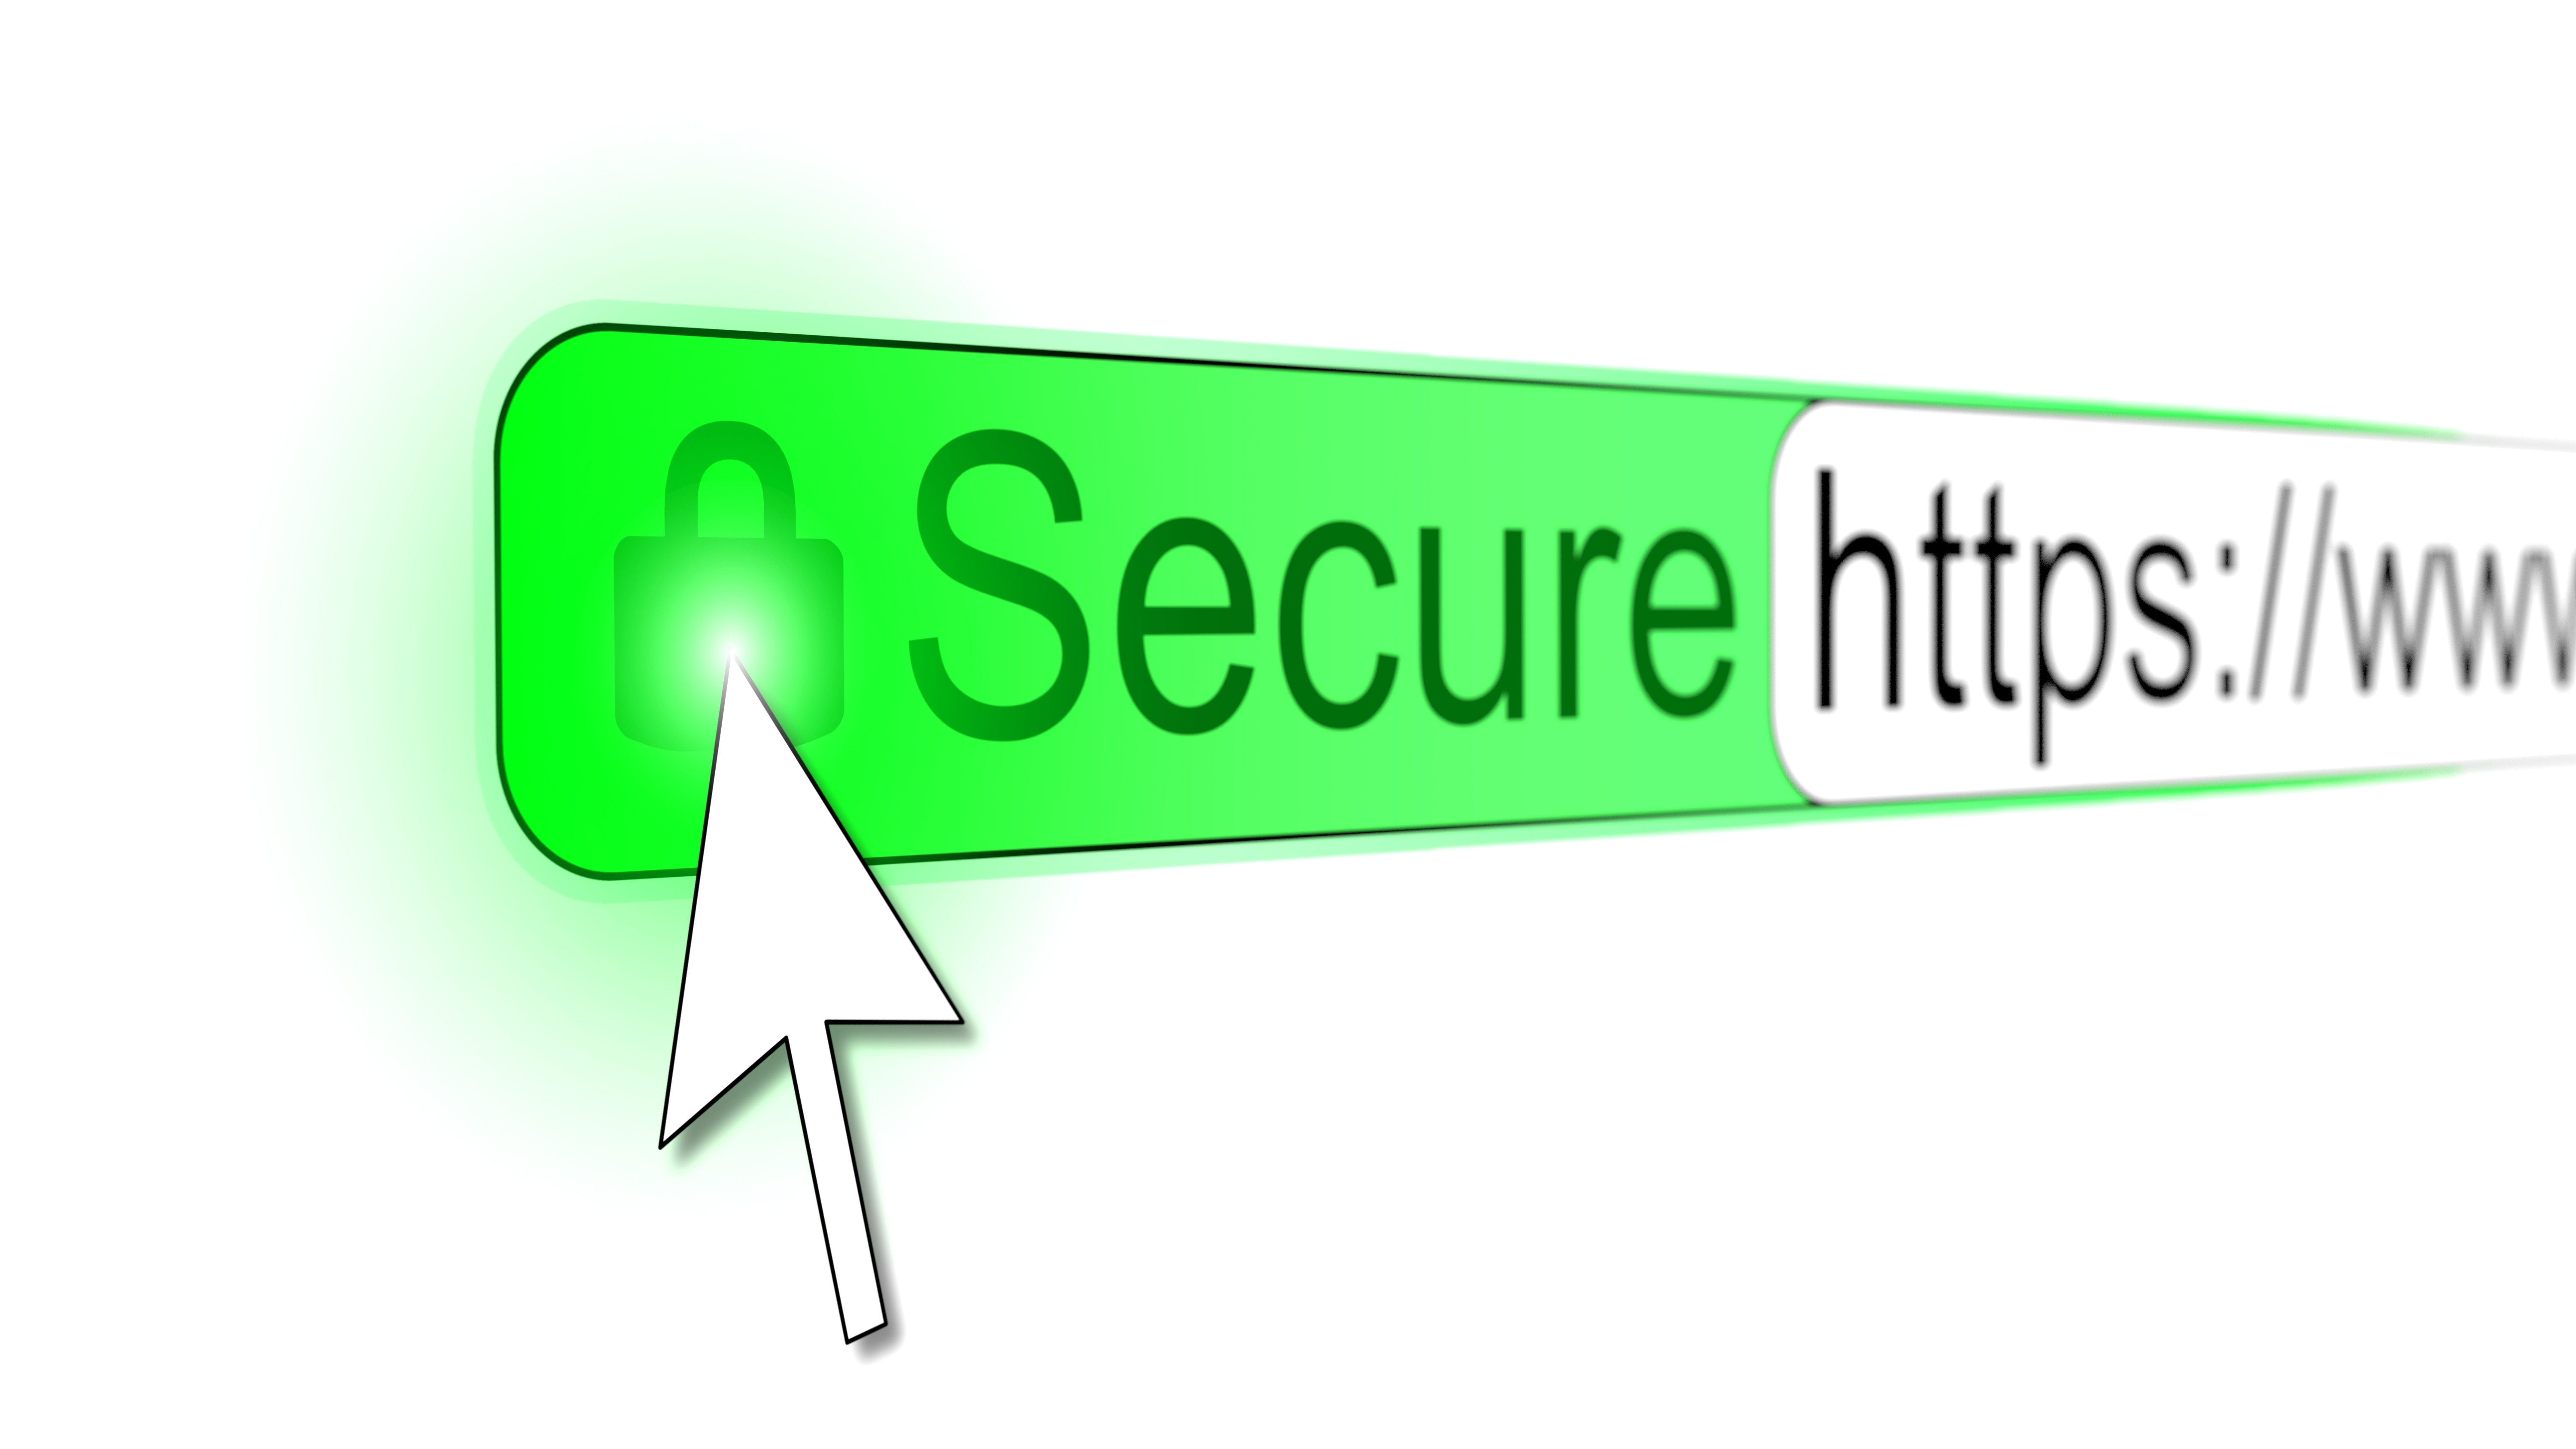 HTTP Secure